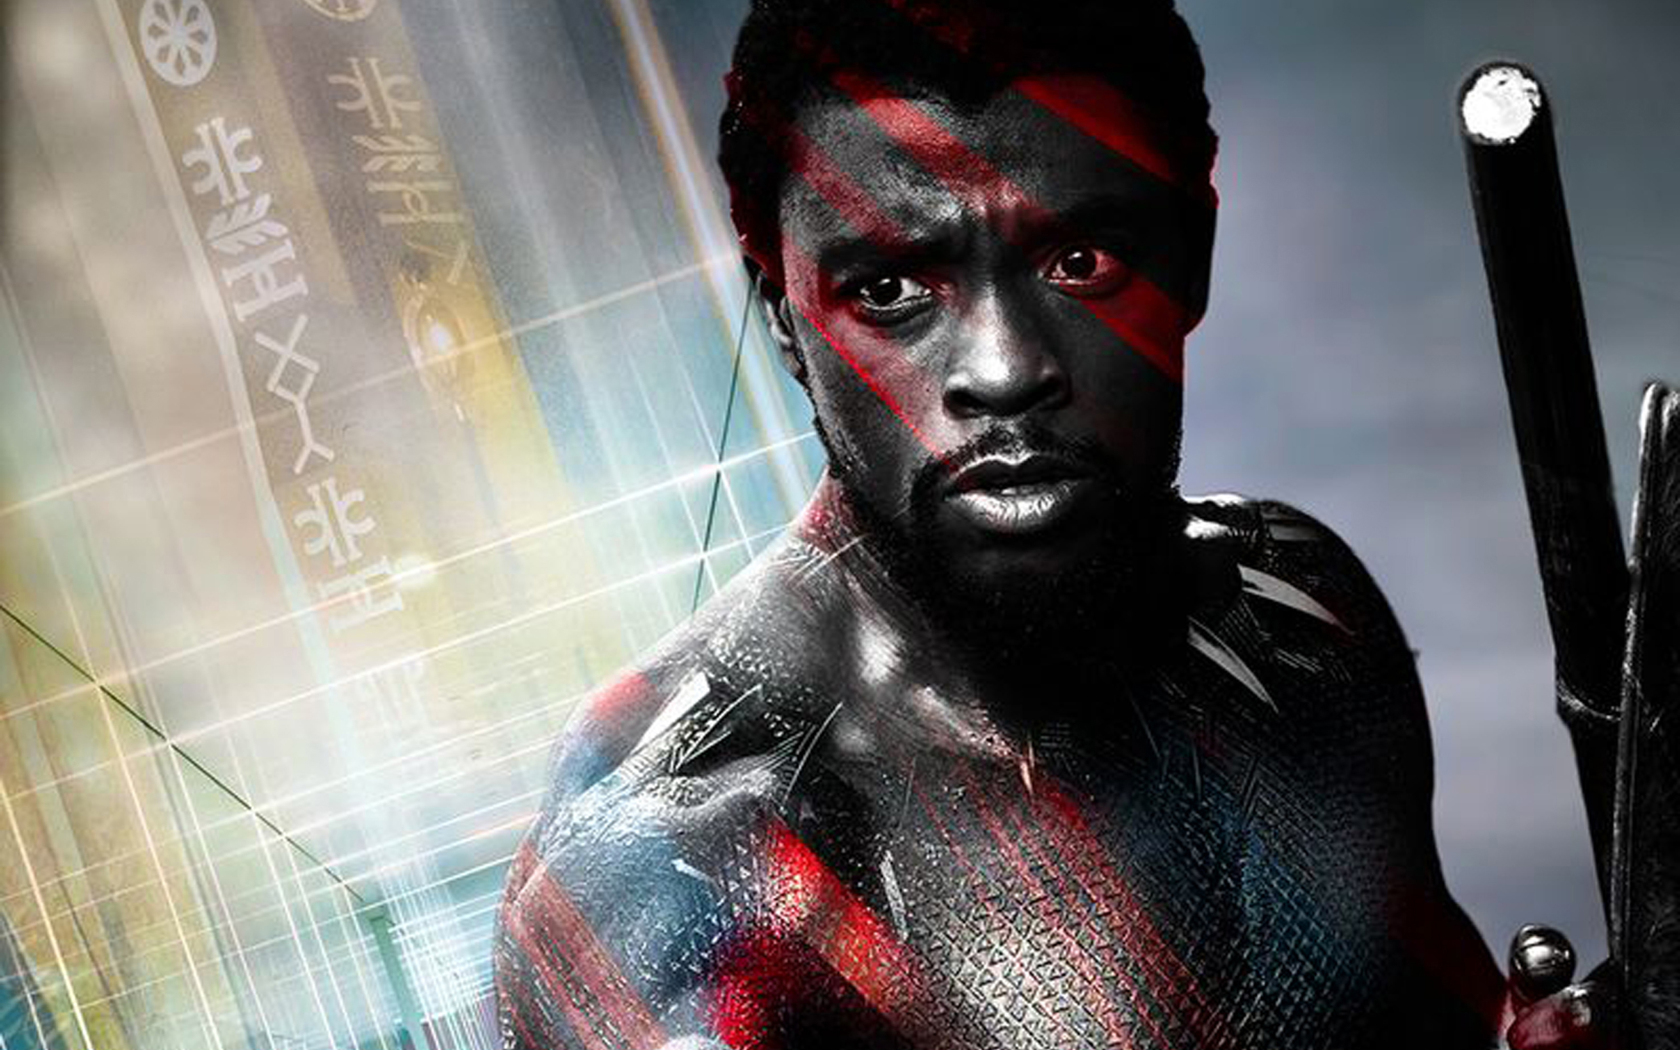 Black Panther Marvel Wallpaper 2018 In Marvel: Chadwick Boseman As Black Panther 2018 Movie, Full HD 2K